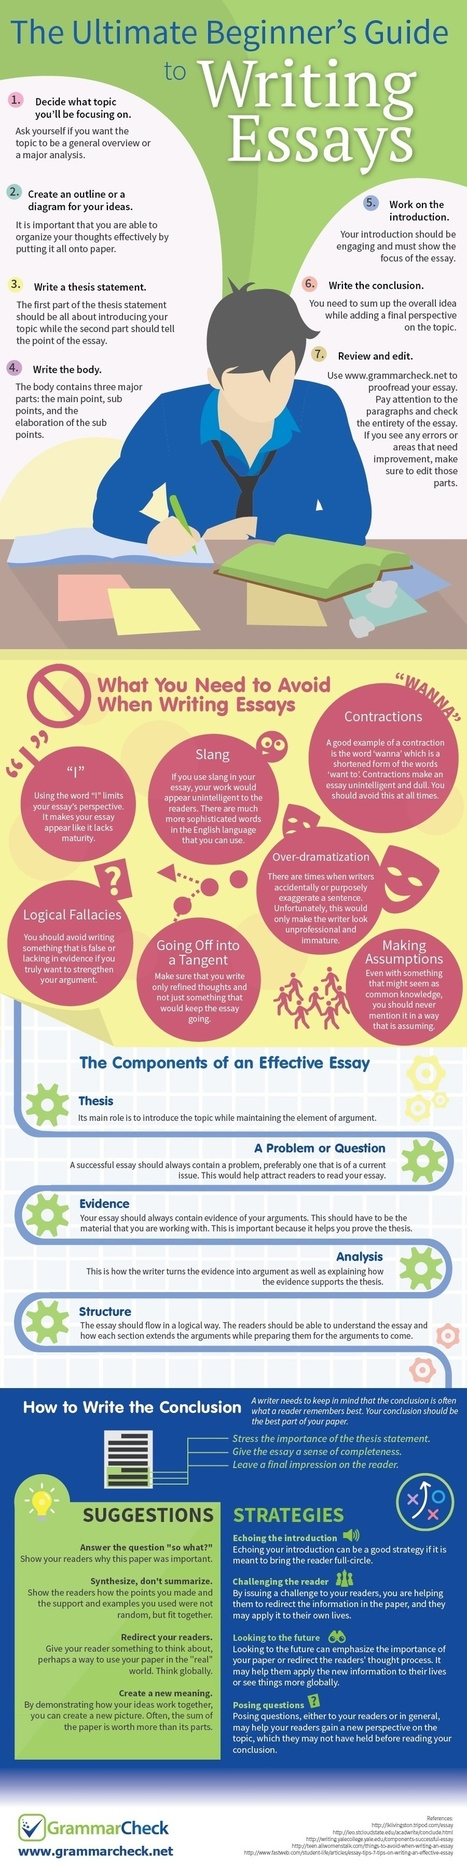 How to Get an A+ on Every Research Paper that You Write | educación secundaria | Scoop.it